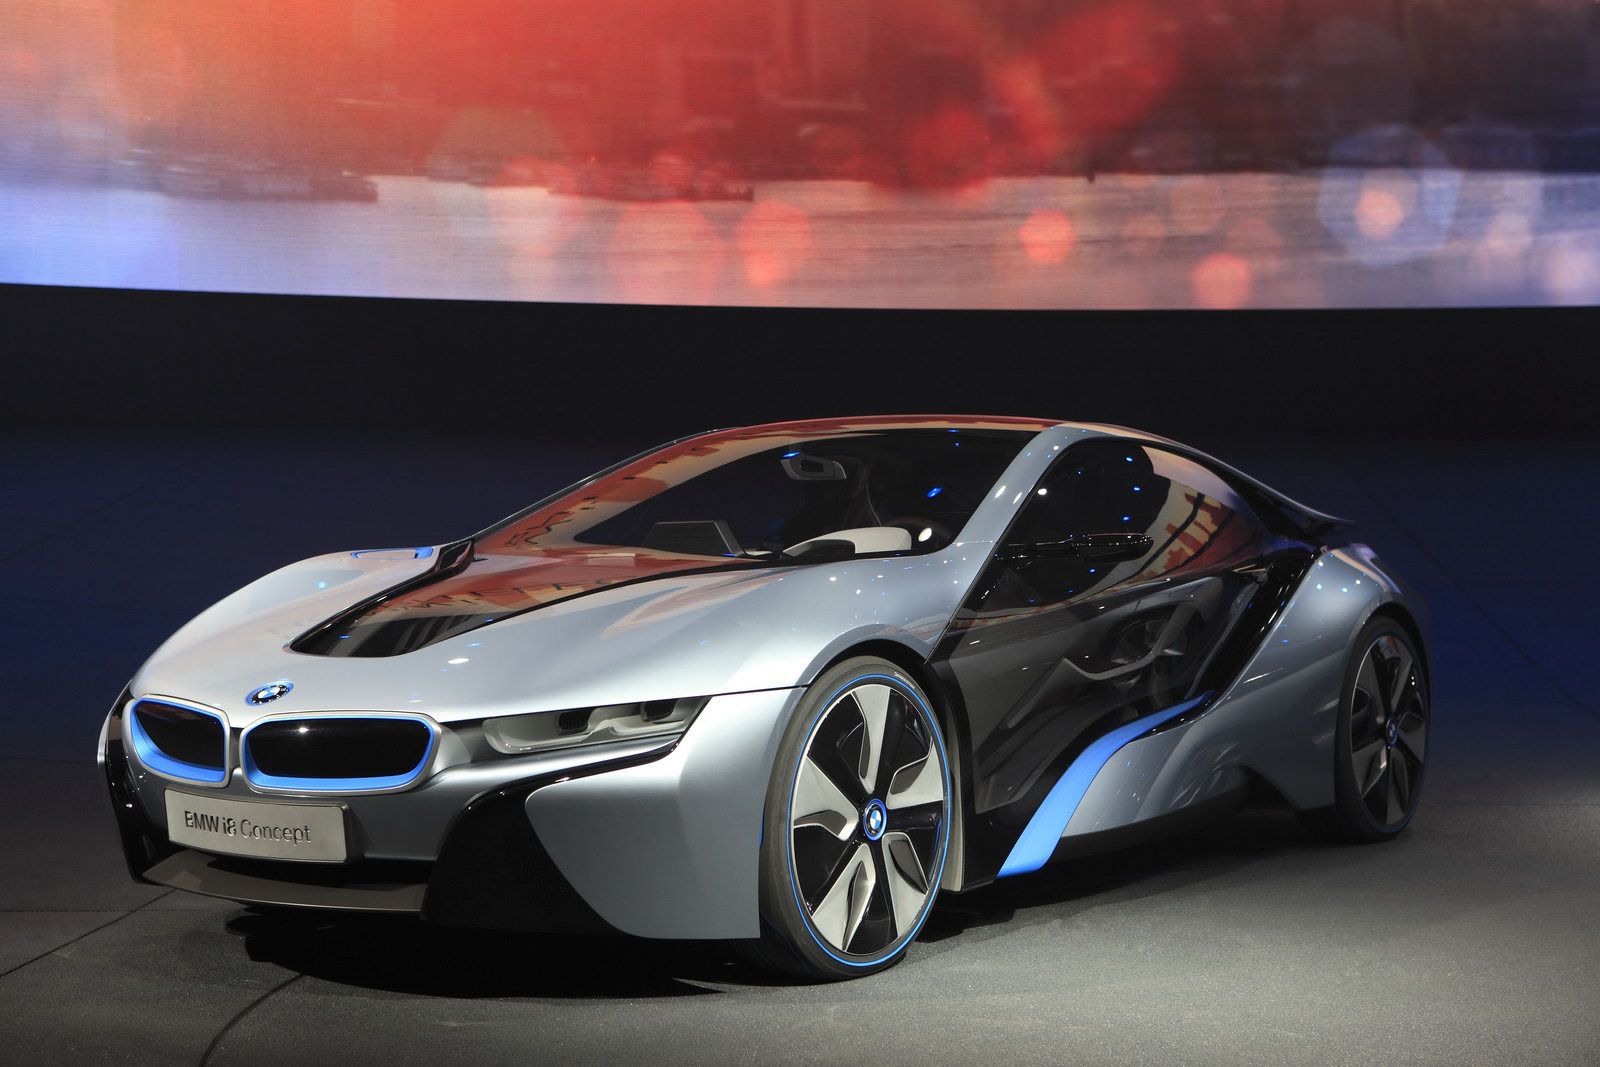 bmw i8 concept autooonline magazine. Black Bedroom Furniture Sets. Home Design Ideas